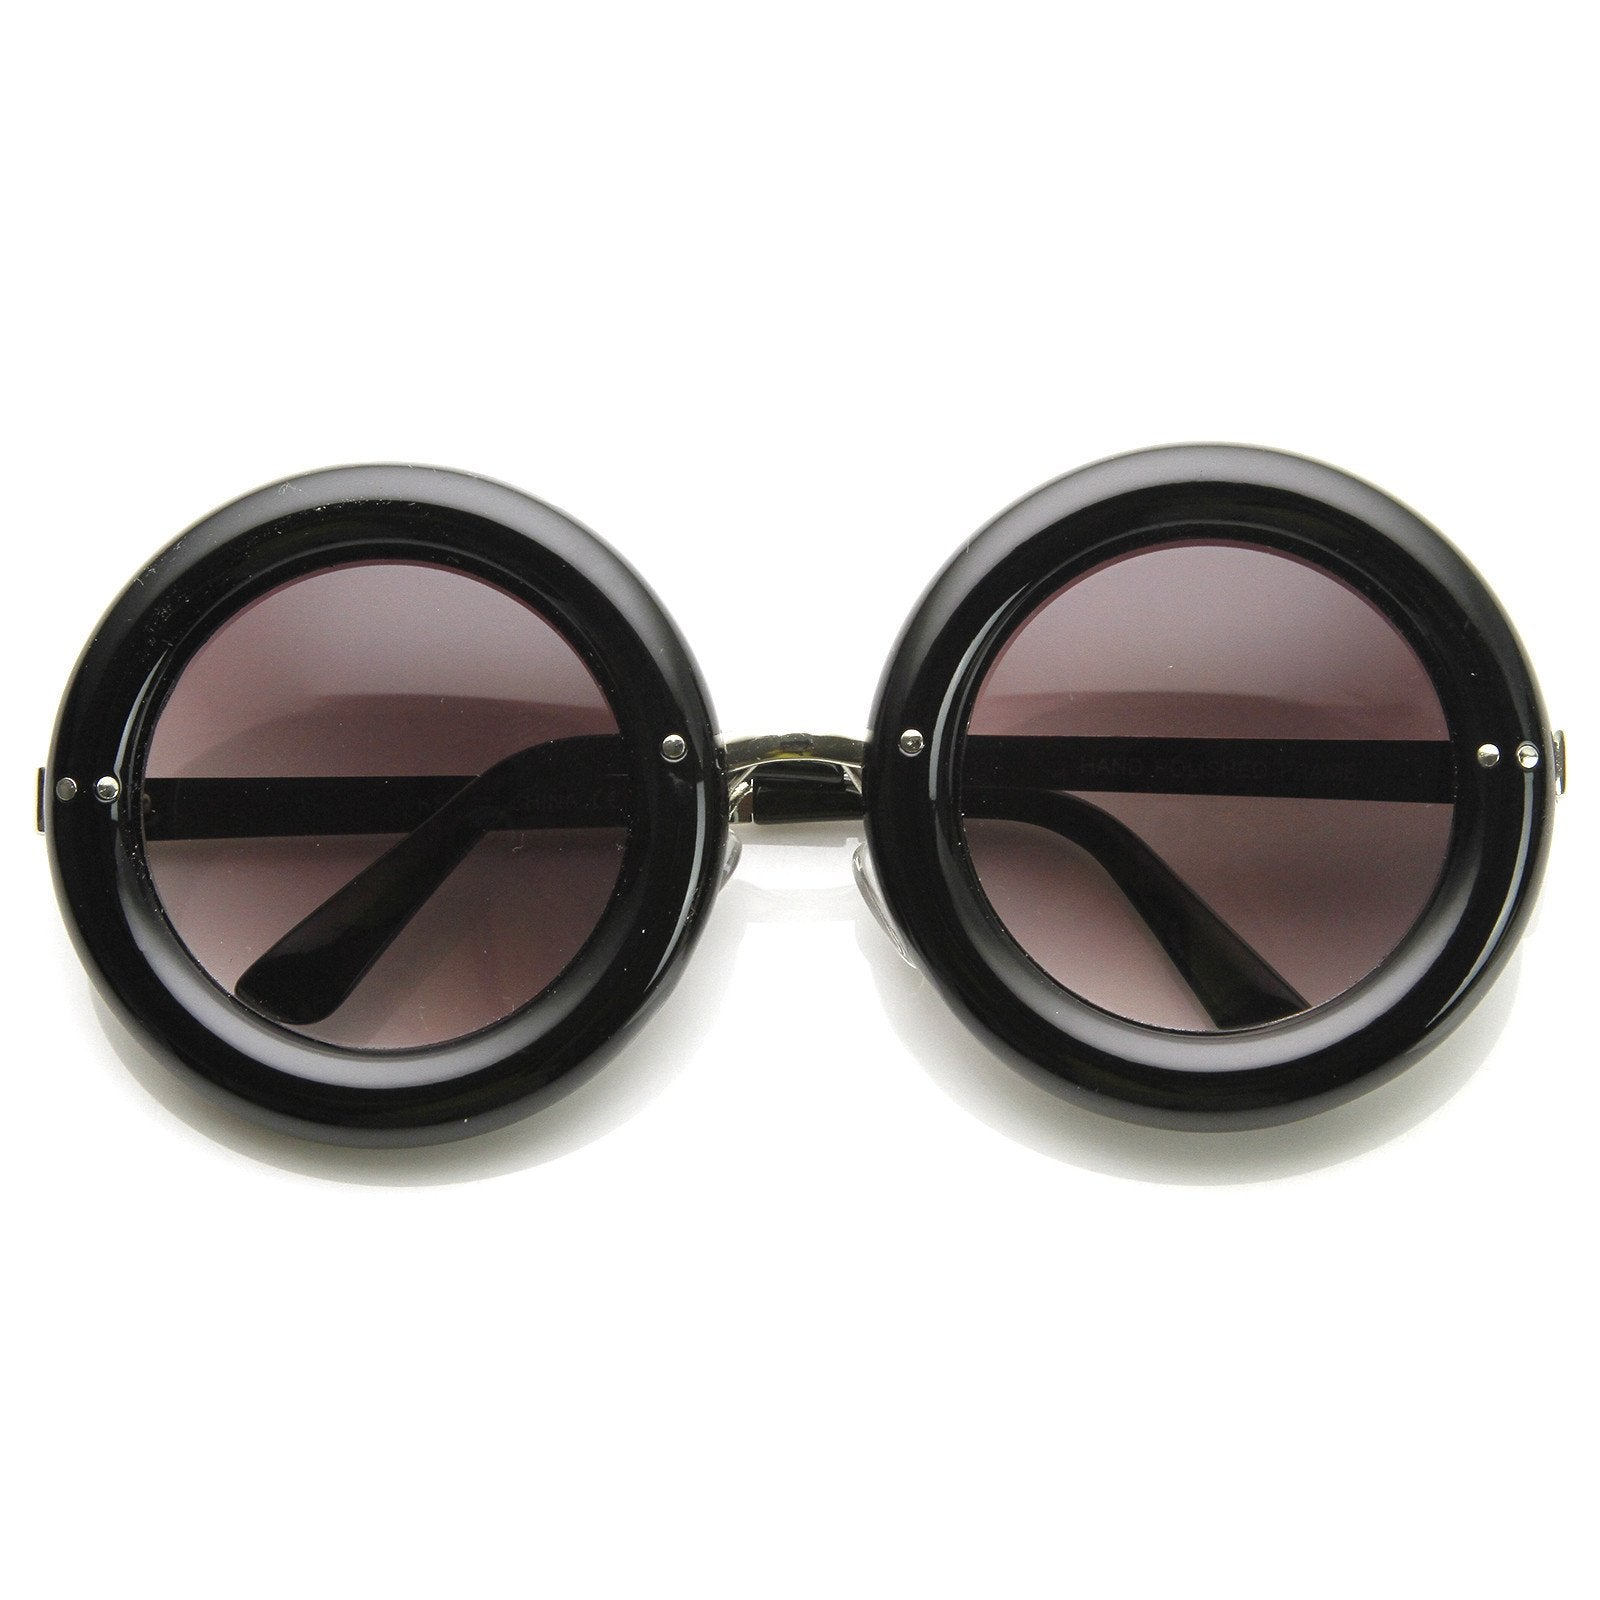 801c765433 ... 1950 s Women s Fashion Donuts Round Retro Sunglasses · Creme · Creme ·  Black · Black